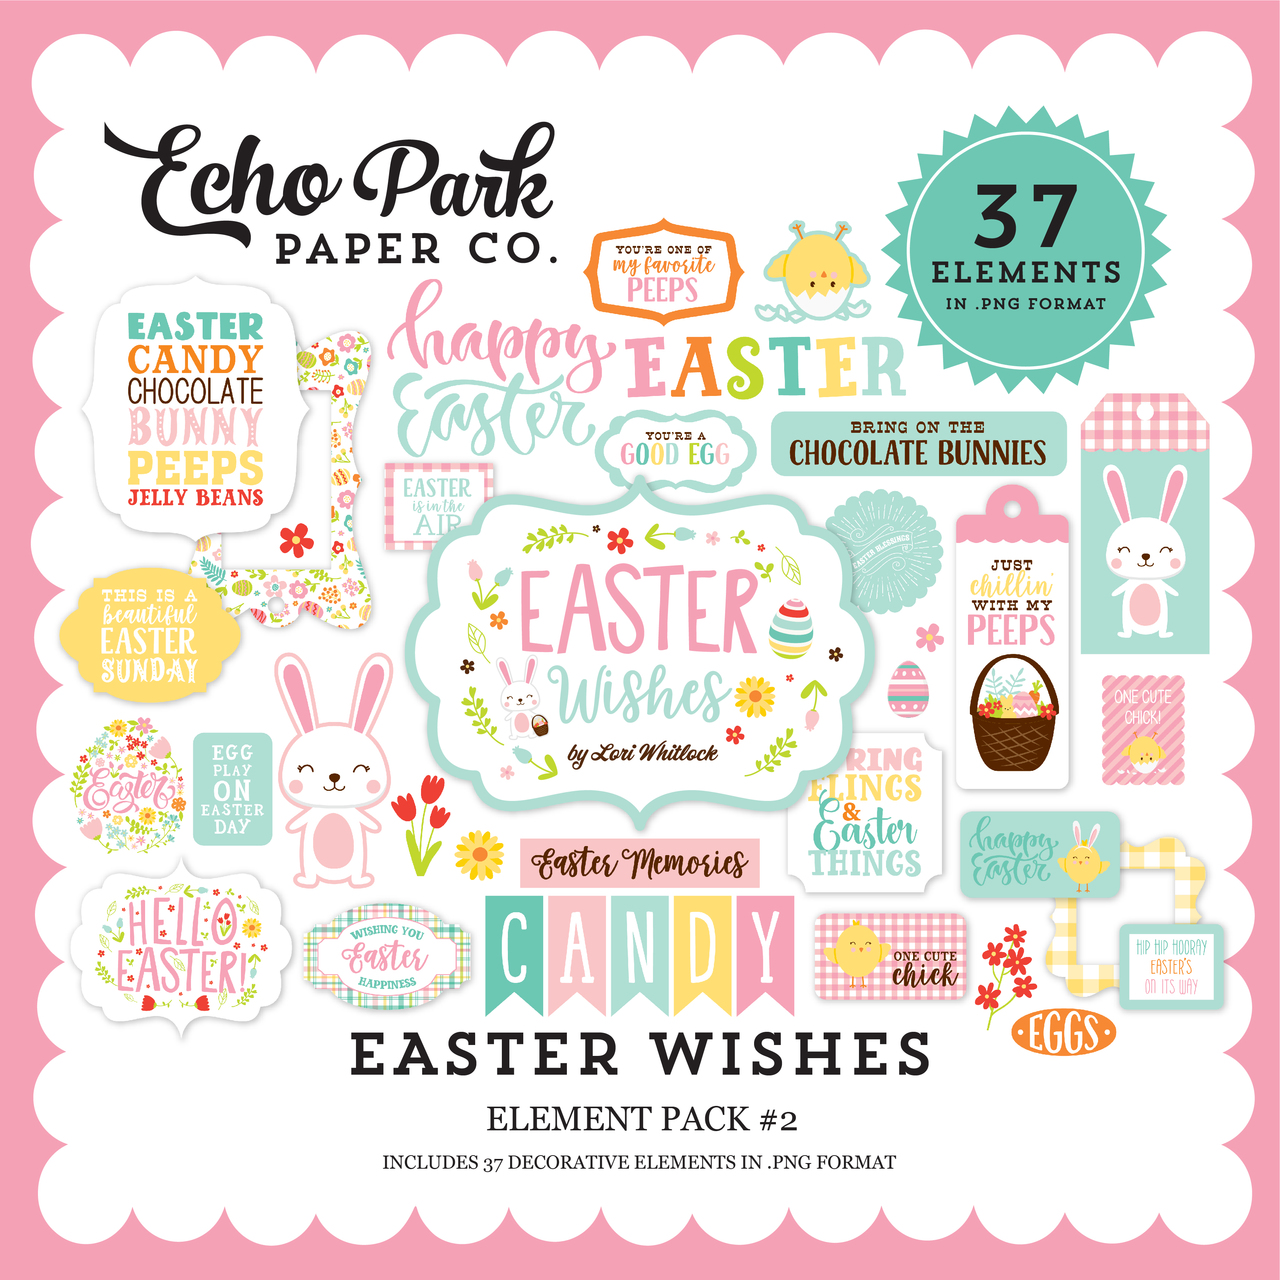 Easter Wishes Element Pack #2